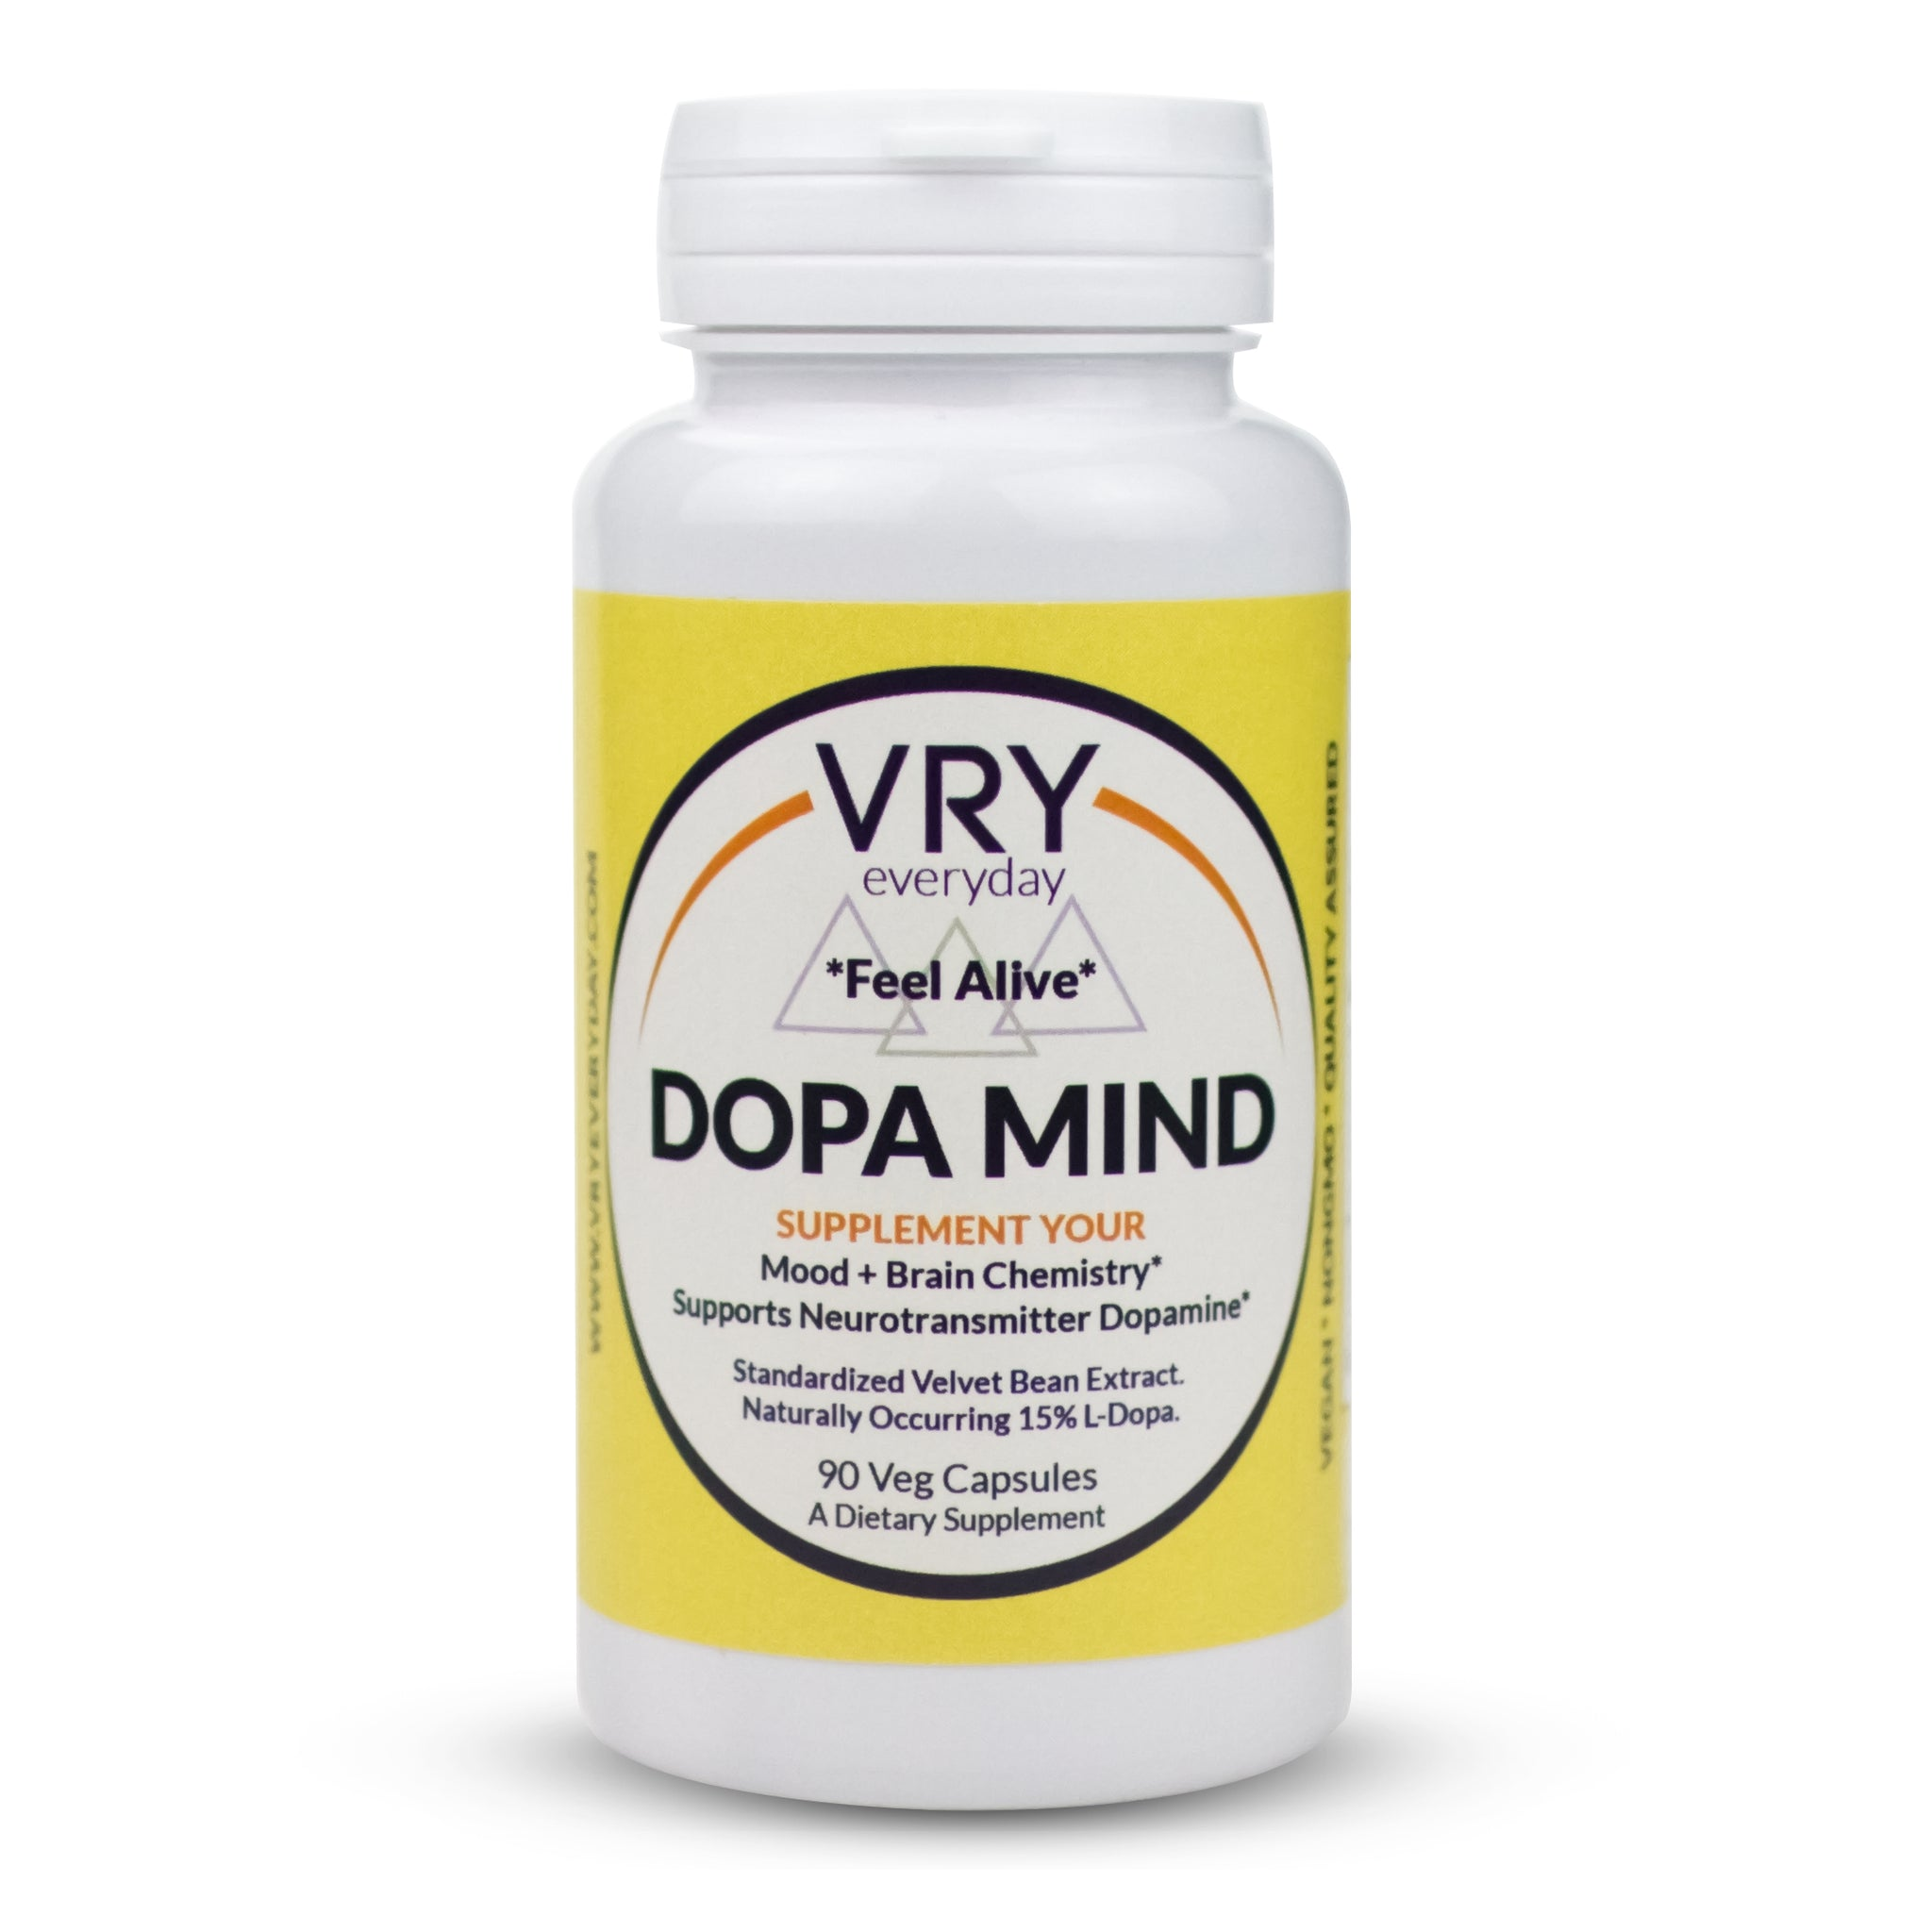 Dopa Mind Feel Alive Dopamine Supplement